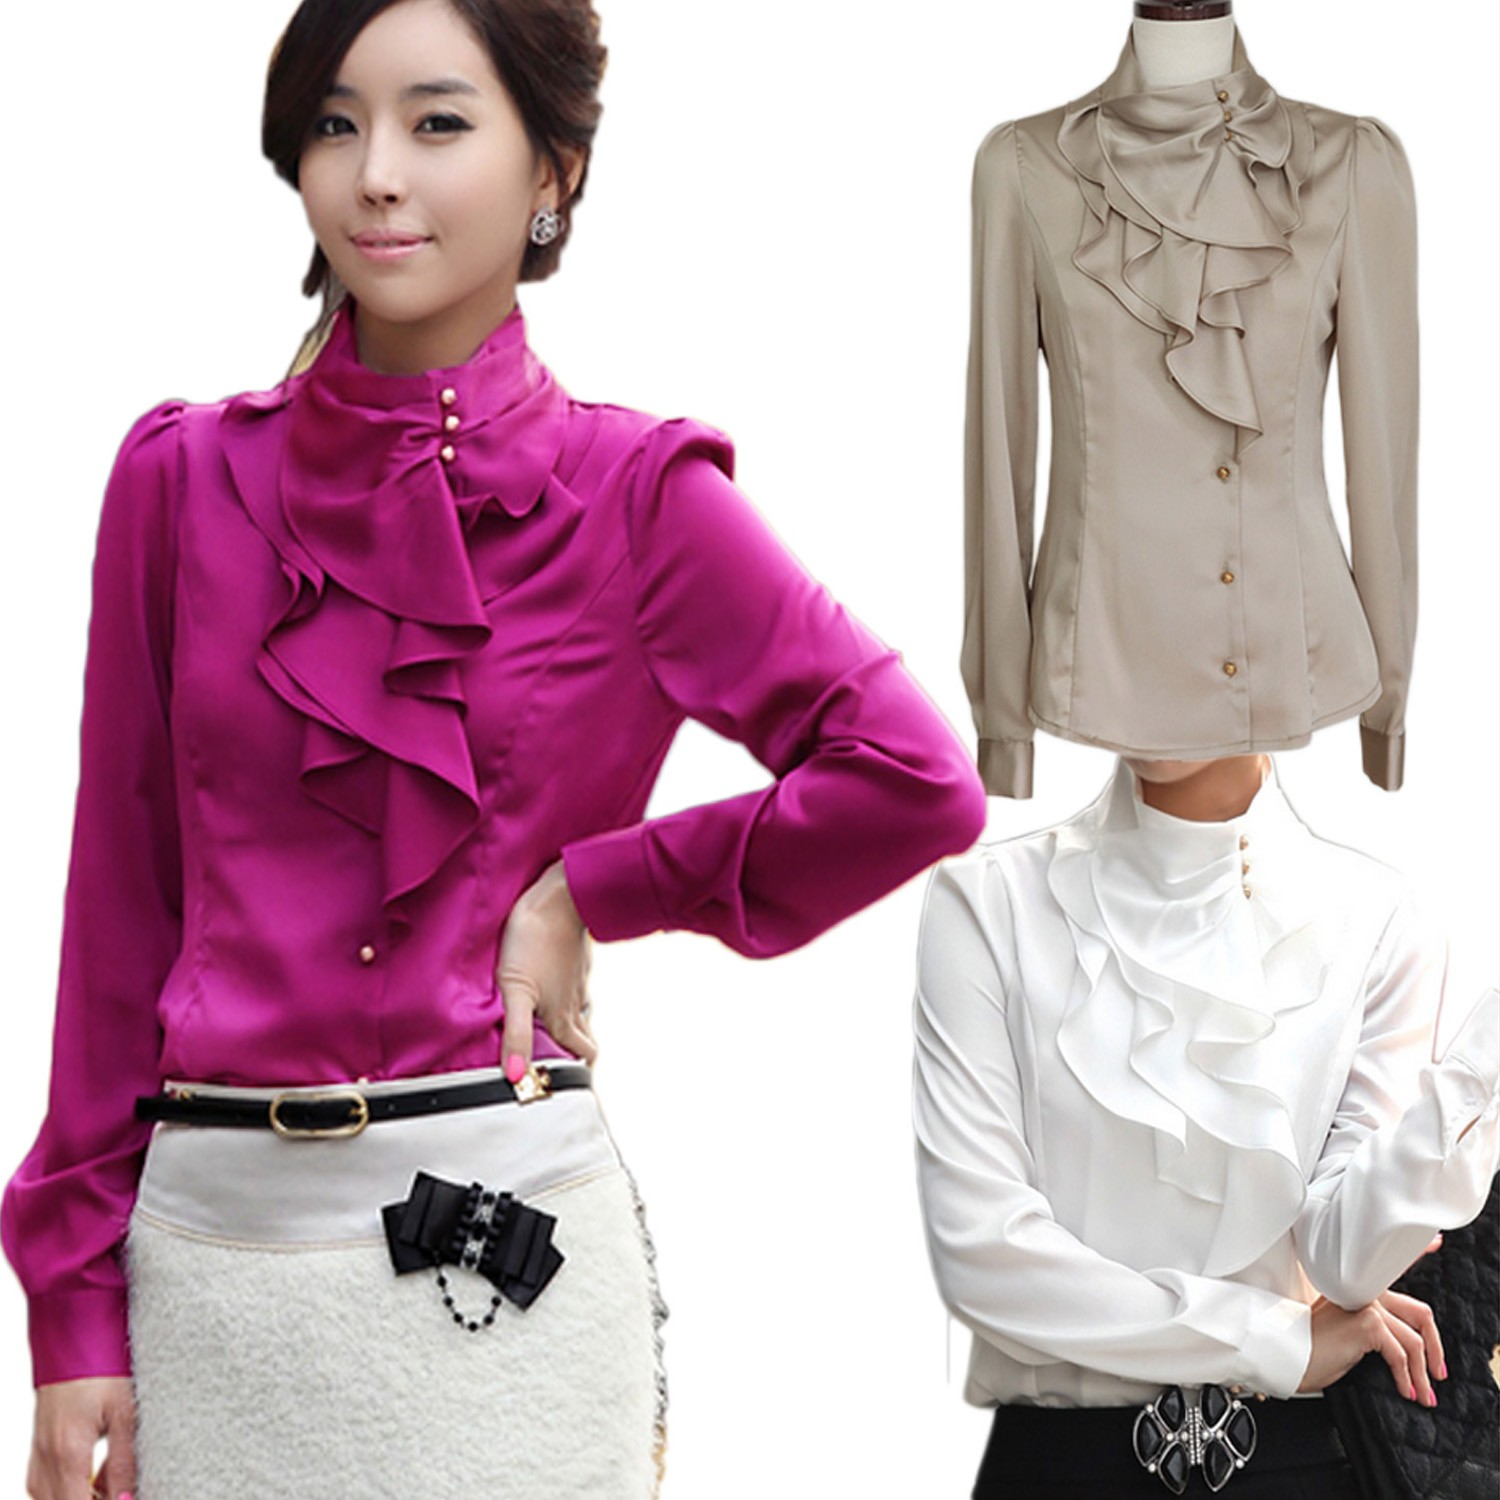 Beige/Purple/White Long Sleeve New Collar Korea Shiny Ruffle Shirt Blouse Top